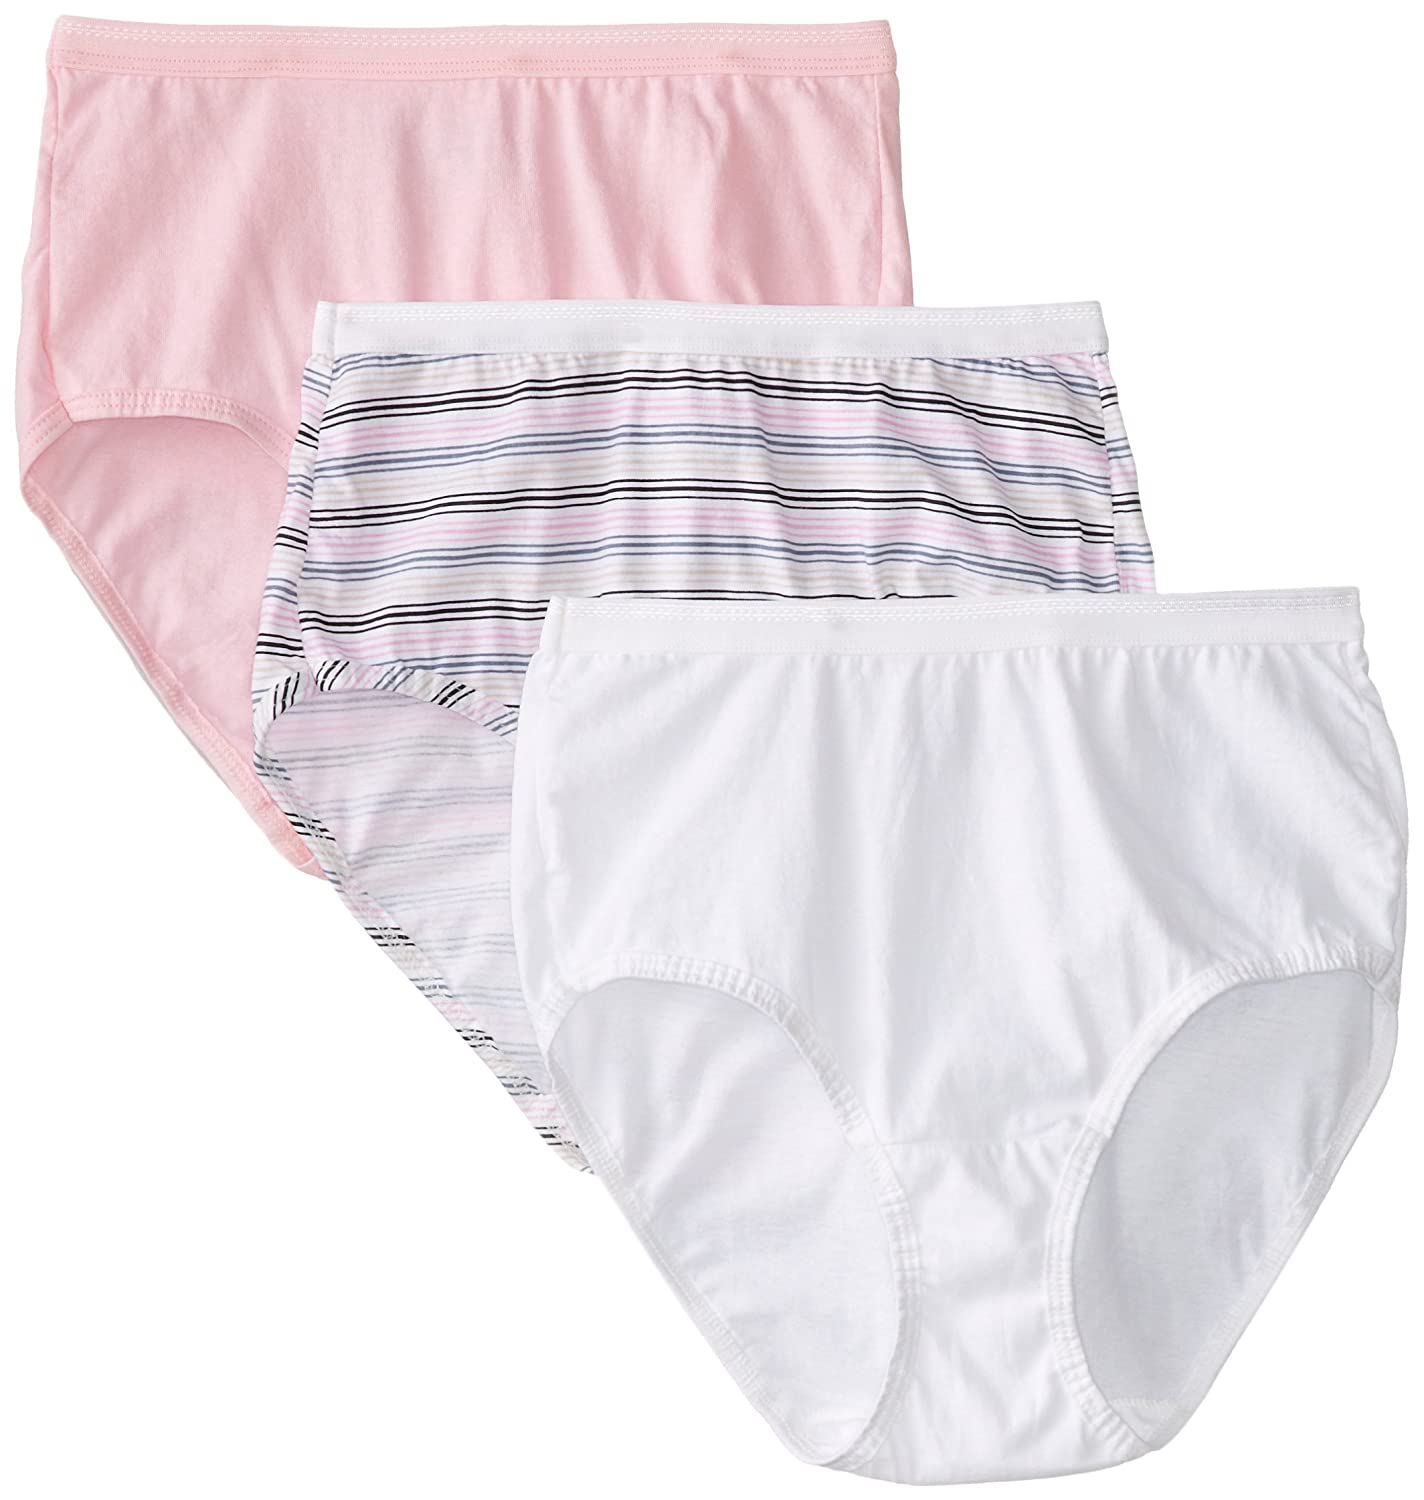 Fruit of the Loom Women's Cotton Assorted Brief Panty 3DUB204